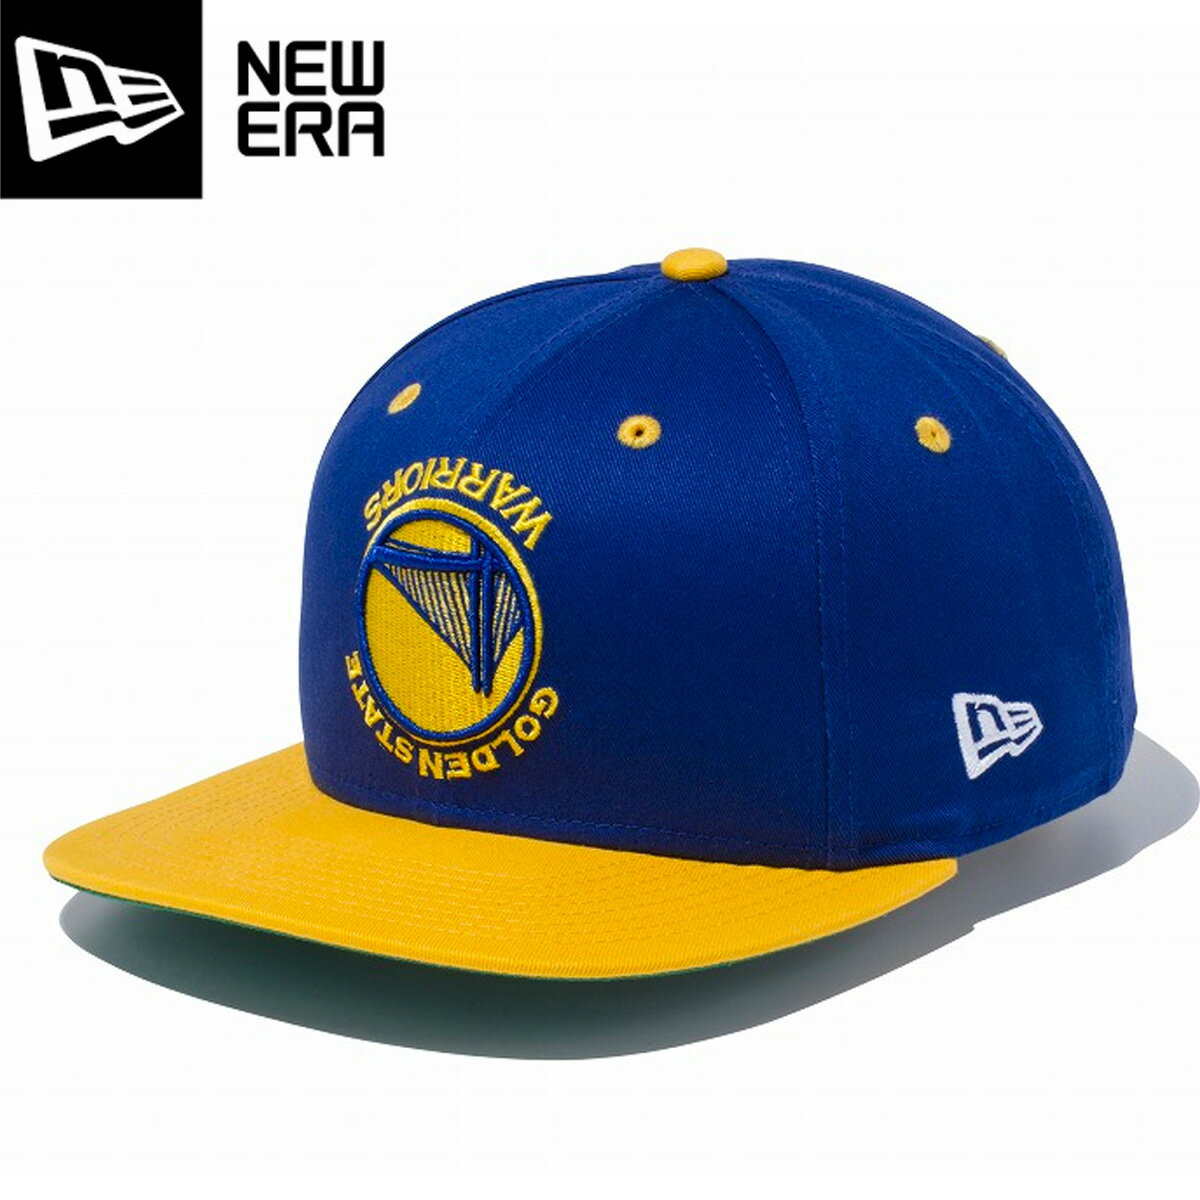 NEW ERA 9FIFTY ORIGINAL FIT UPSIDE DOWN ニューエラ 9FIFTY アップサイド ダウン ゴールデンステート ウォリアーズ GOLDEN STATE WARRIORS